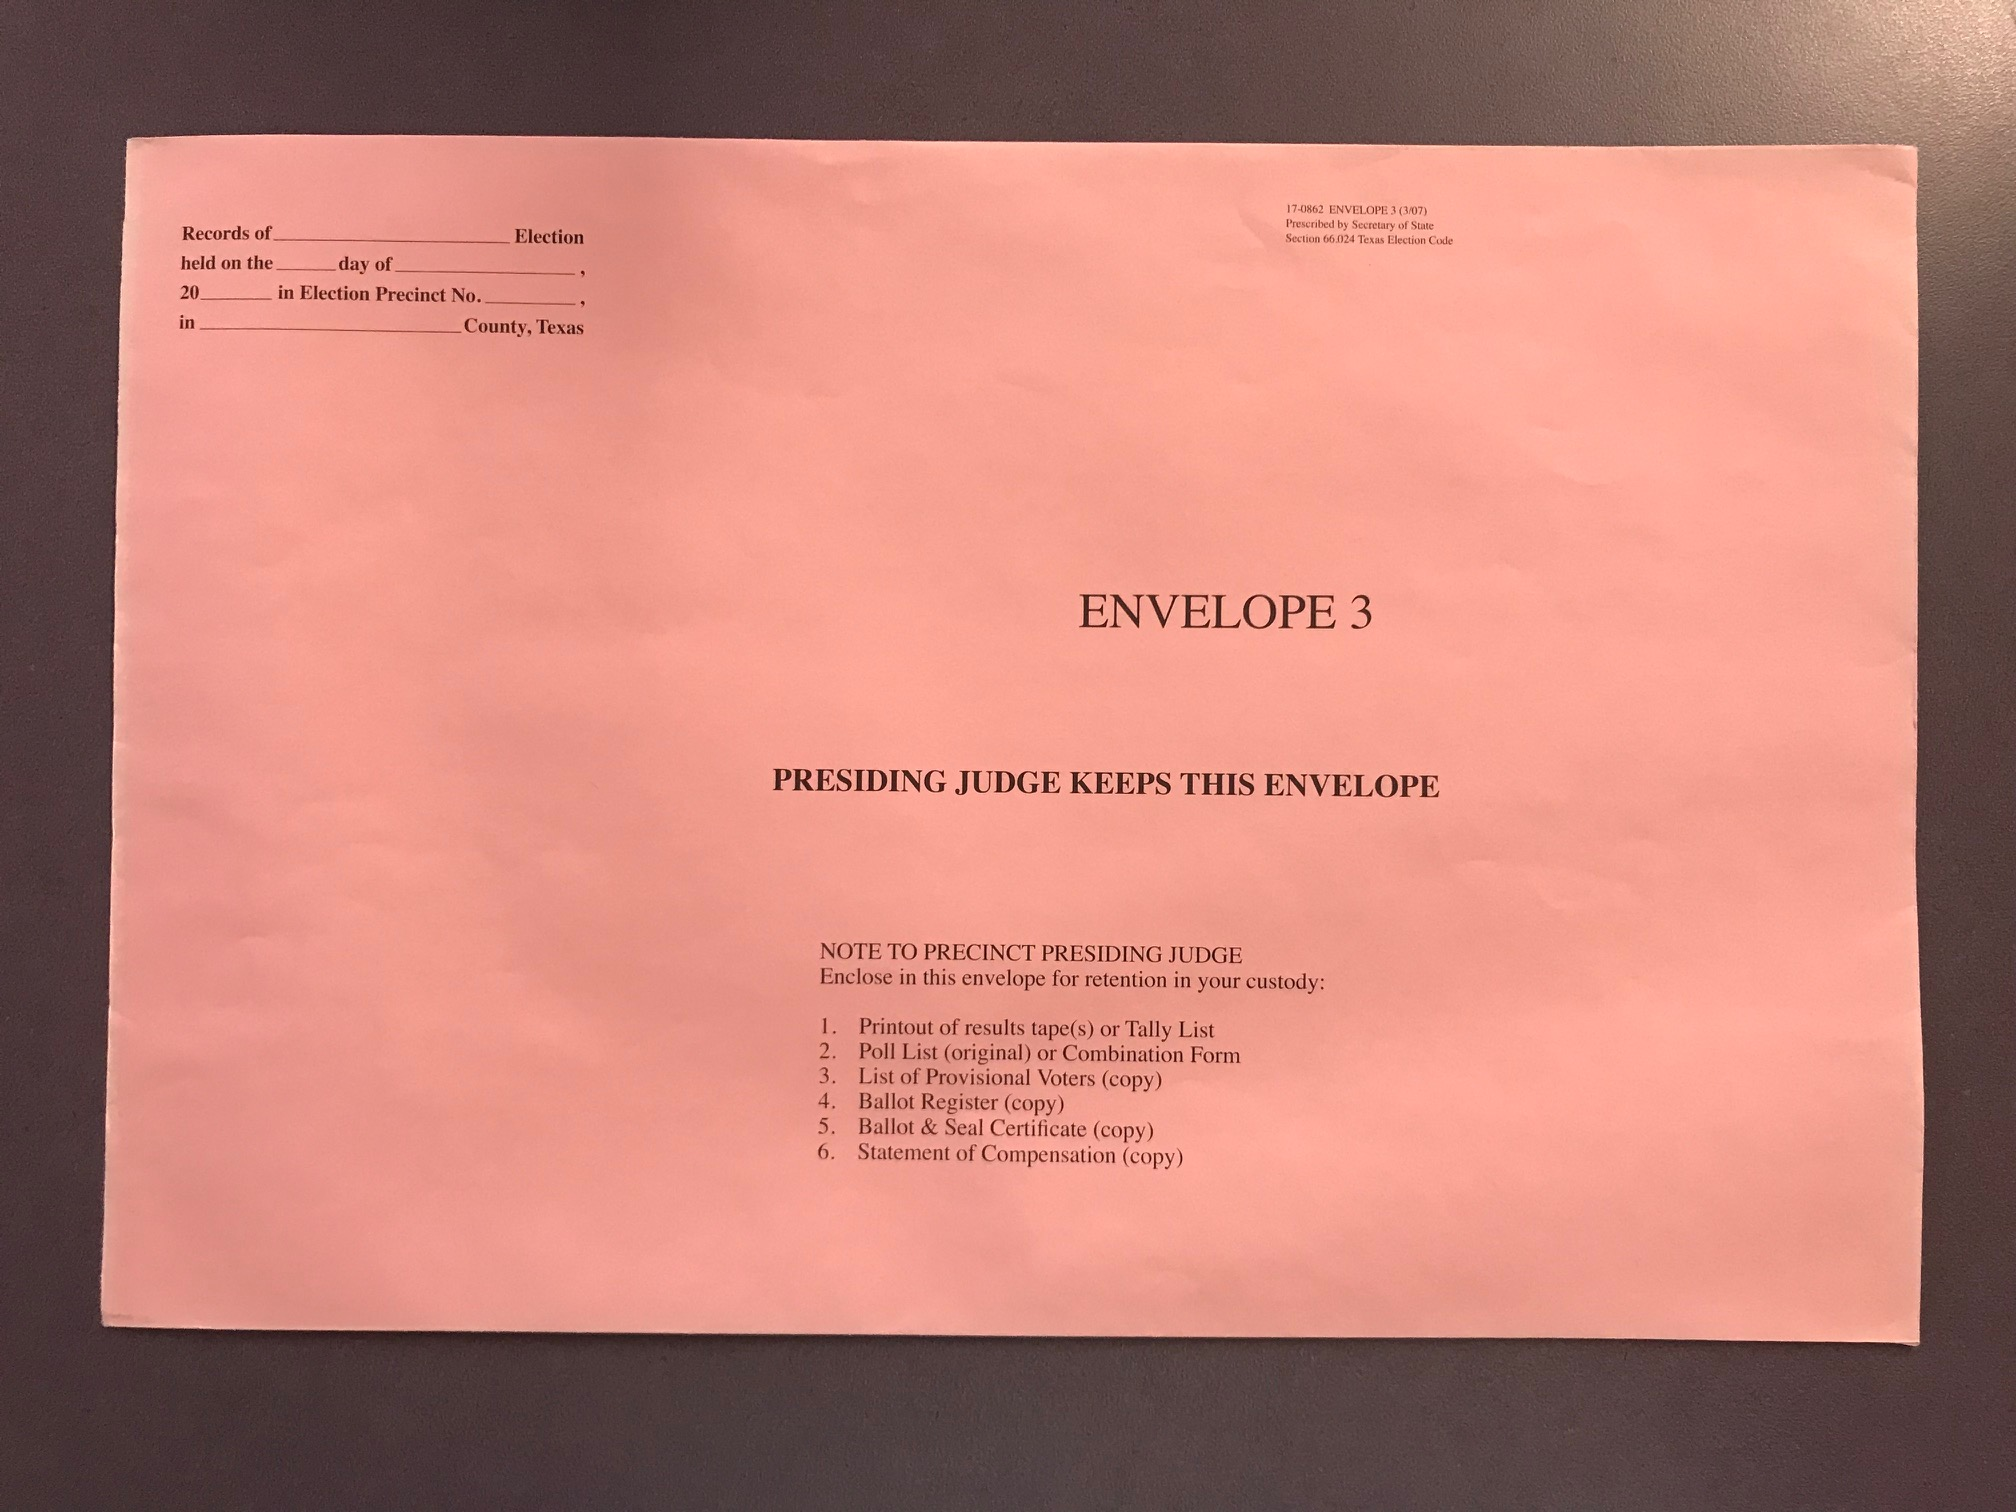 AW8-6 Precinct Presiding Judge Pink Envelope 10x15